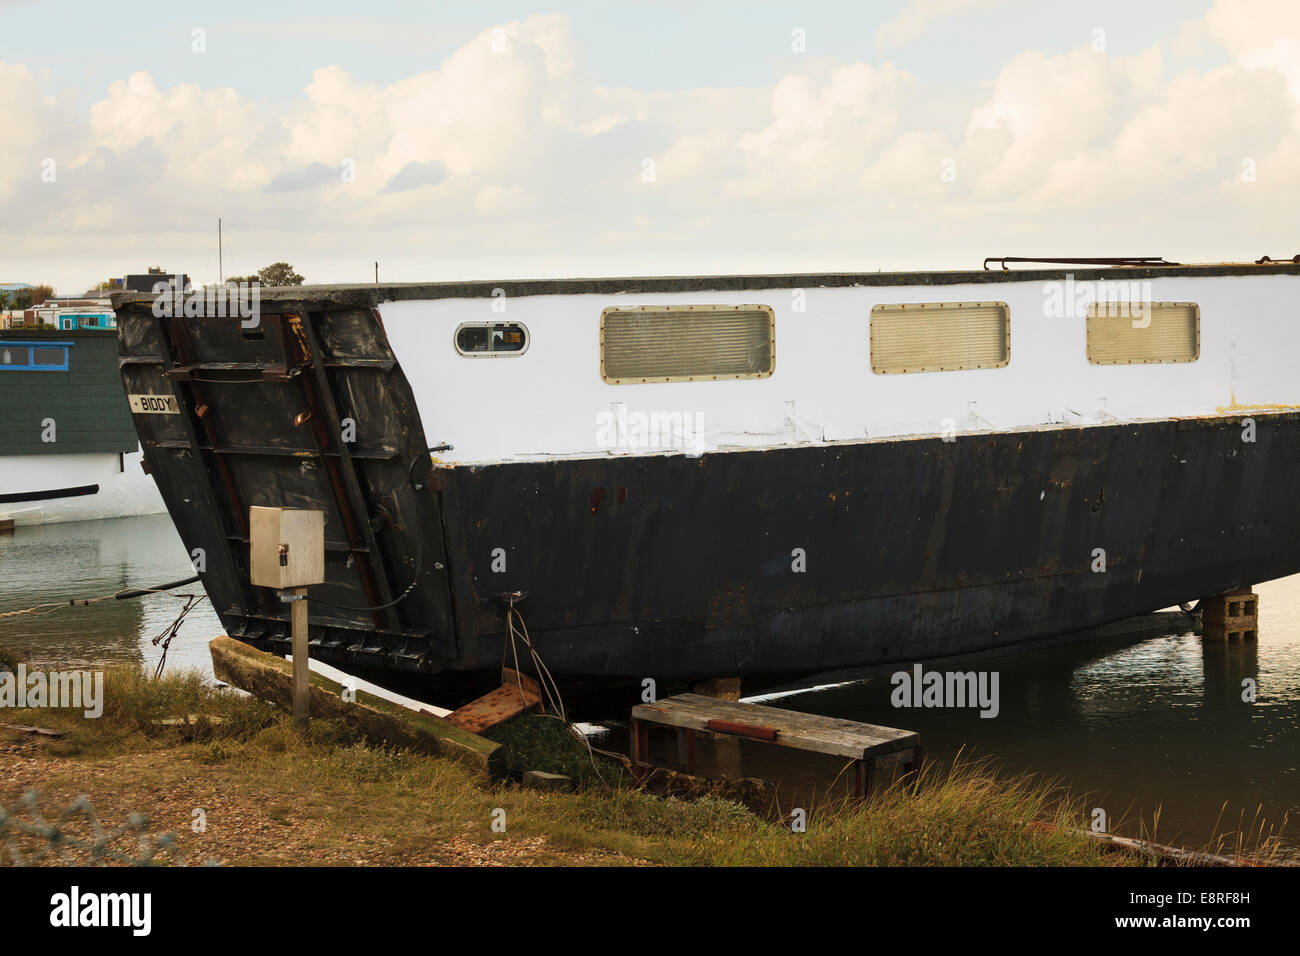 Old landing craft converted into houseboat. - Stock Image